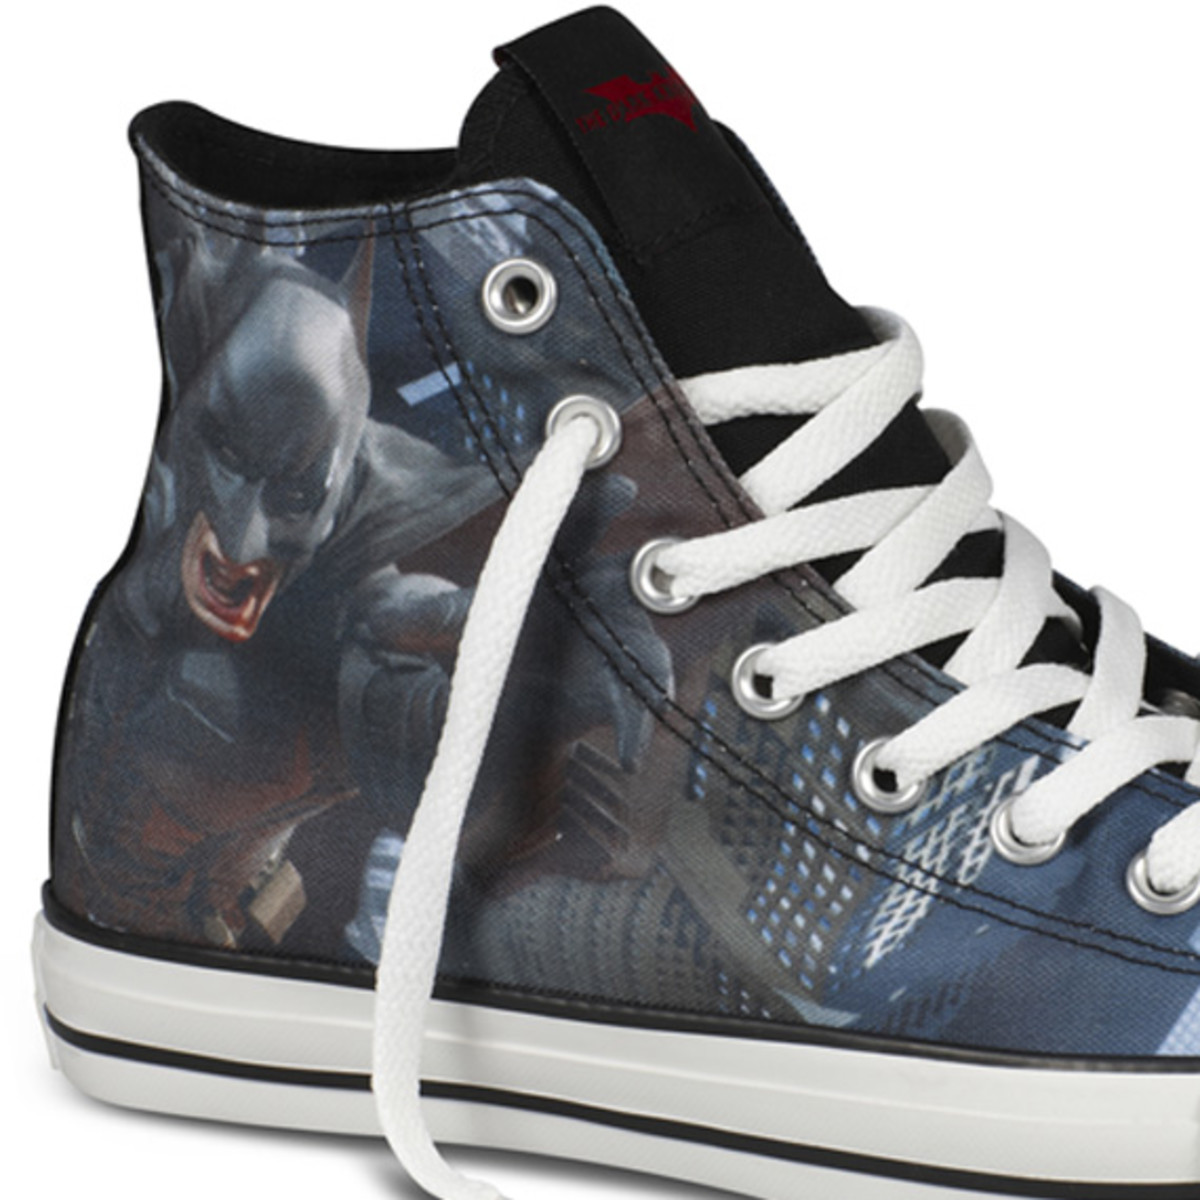 the-dark-knight-rises-converse-chuck-taylor-all-star-collection-06